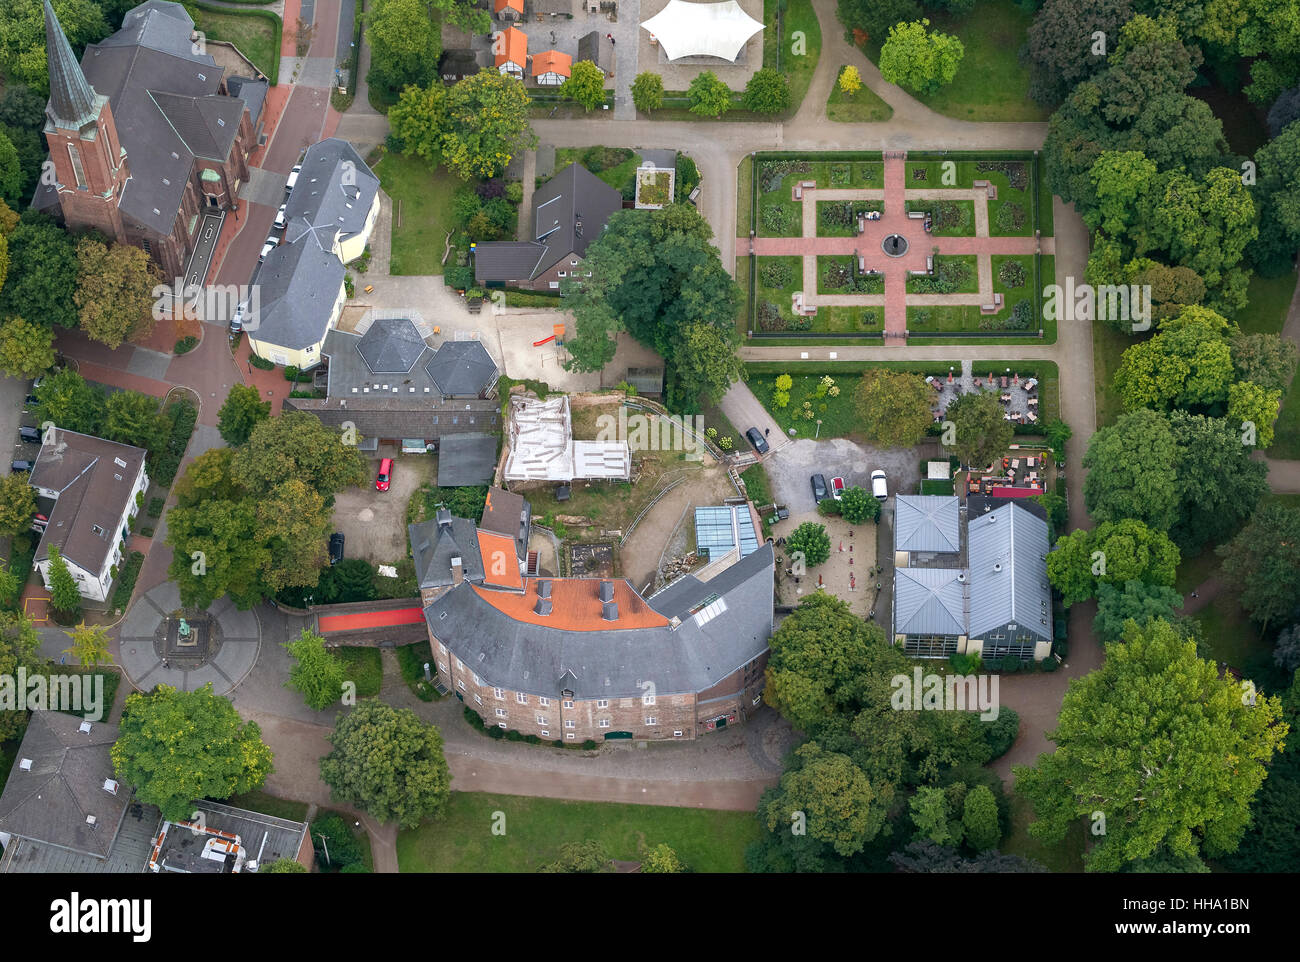 Castle with Castle Park, Moers, Ruhr area, Lower Rhine, North Rhine-Westphalia, Germany, Europe, Aerial view, birds - Stock Image